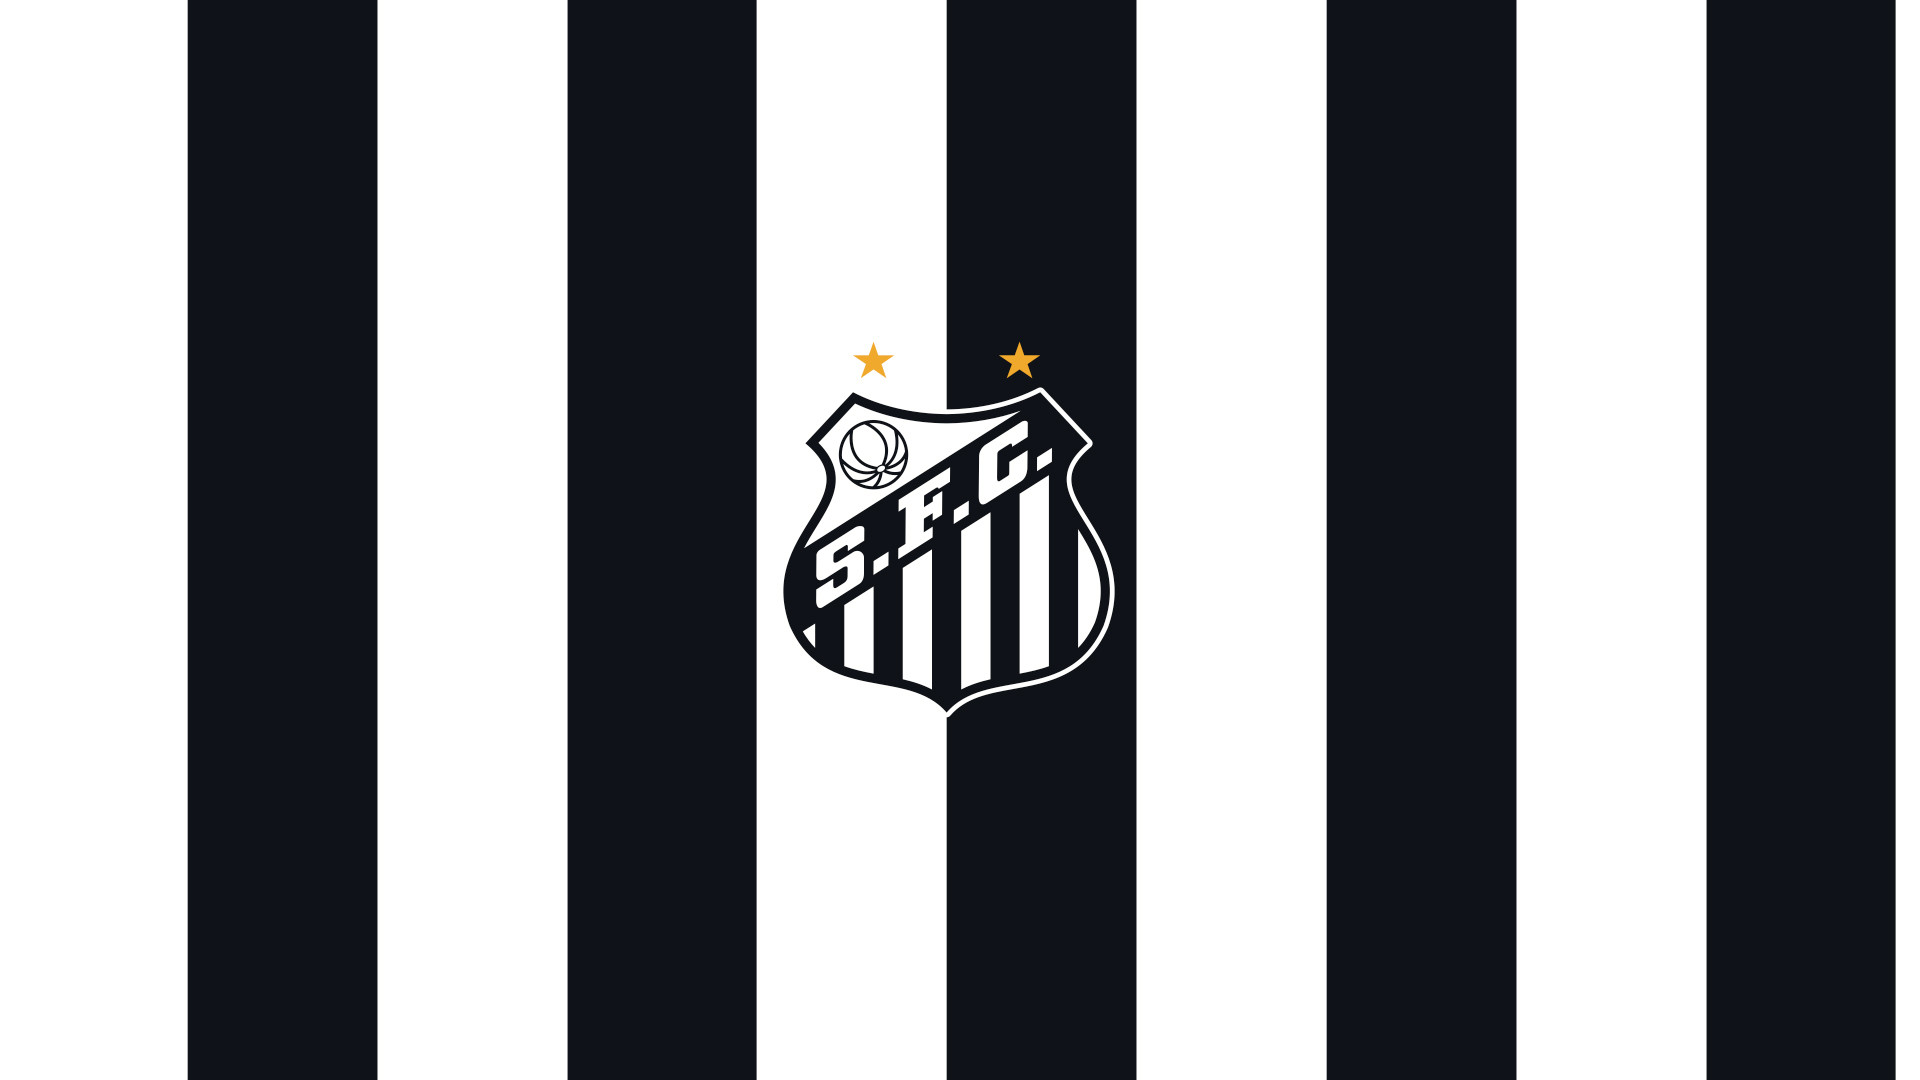 Santos FC Wallpapers 63 images 1920x1080